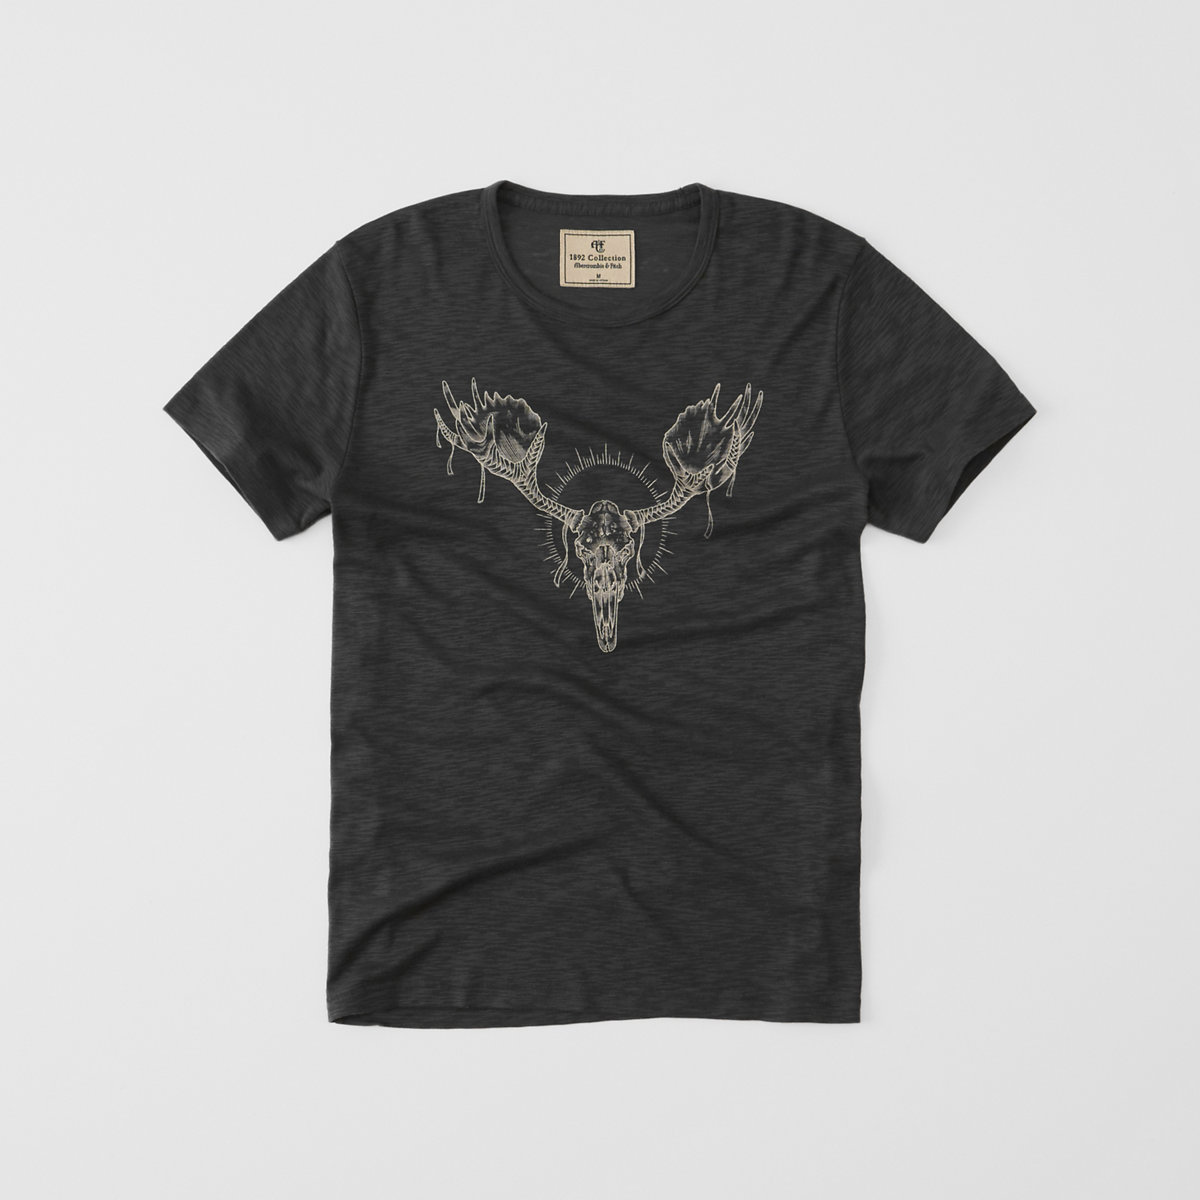 Ryder Evan Robison Graphic Tee